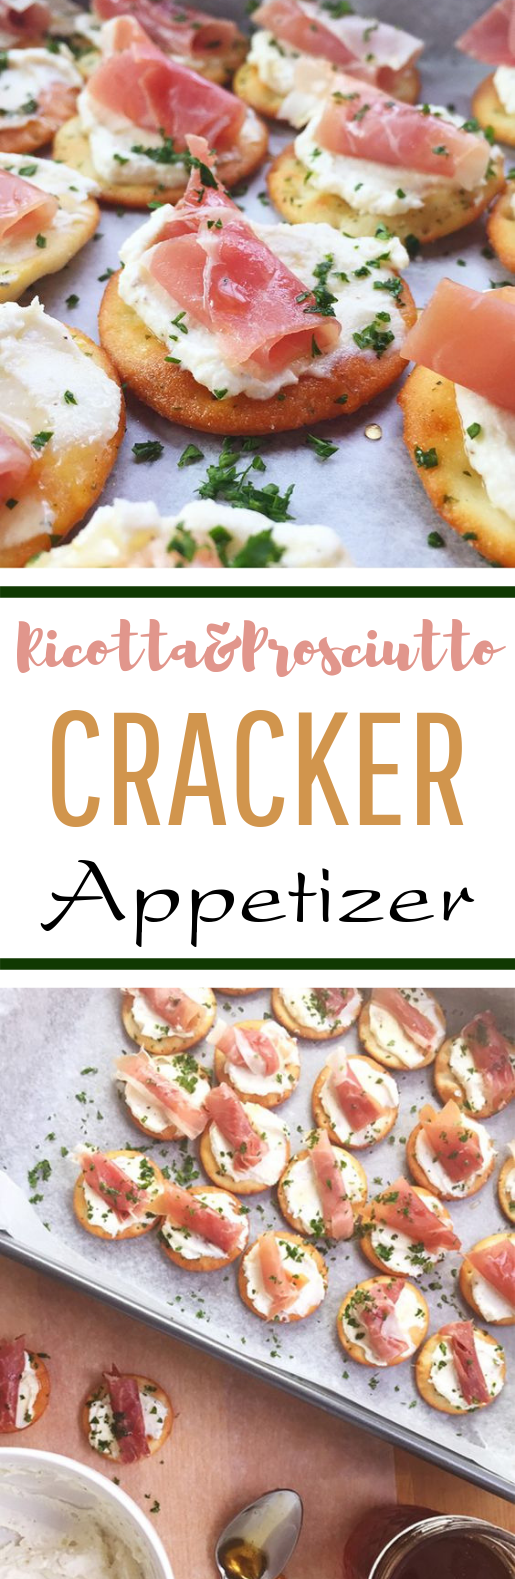 Ricotta and Prosciutto Cracker Appetizer #cheap #fingerfood